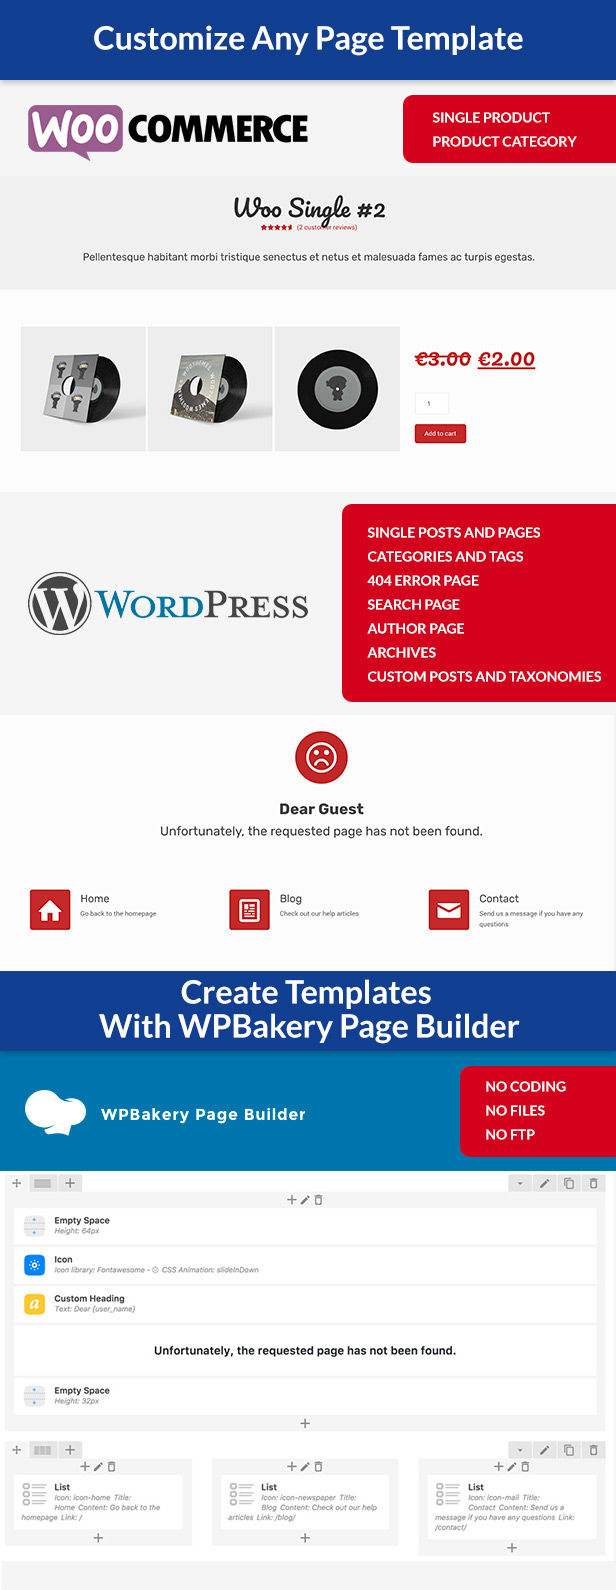 Custom Page Templates: New Way of Creating Custom Templates in WordPress 2